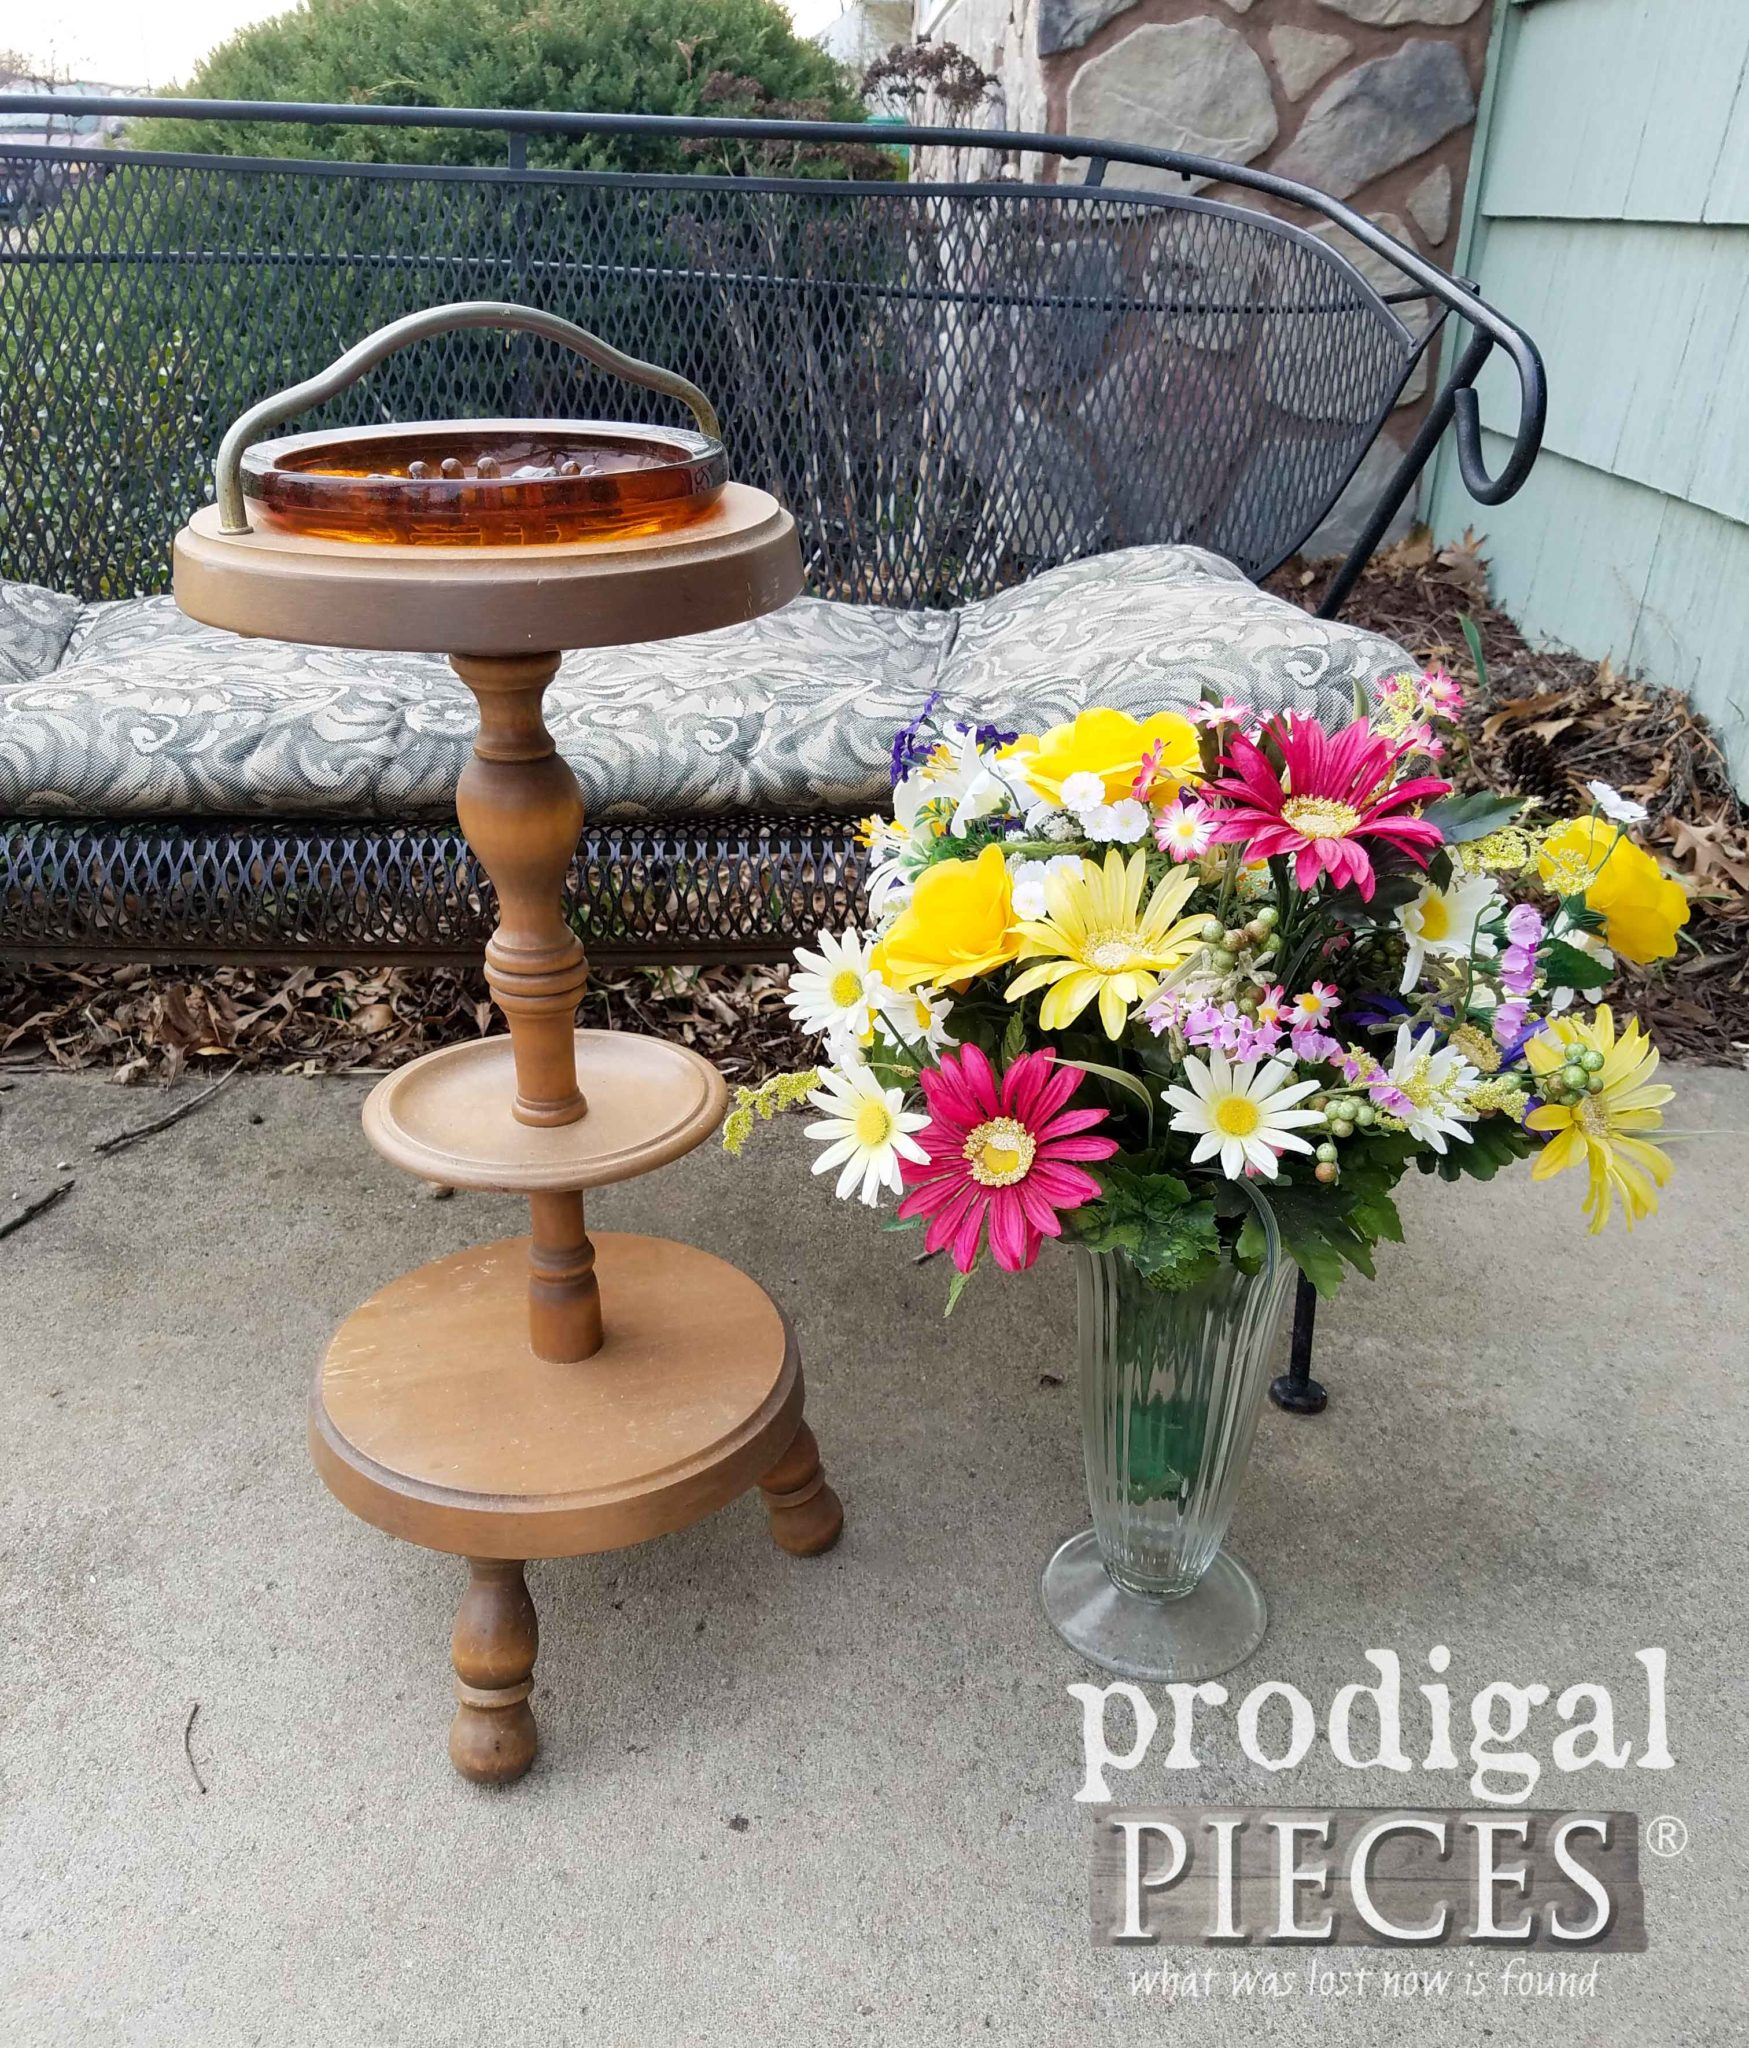 Curbside Ash Tray and Flower Vase Before Makeover by Prodigal Pieces | prodigalpieces.com